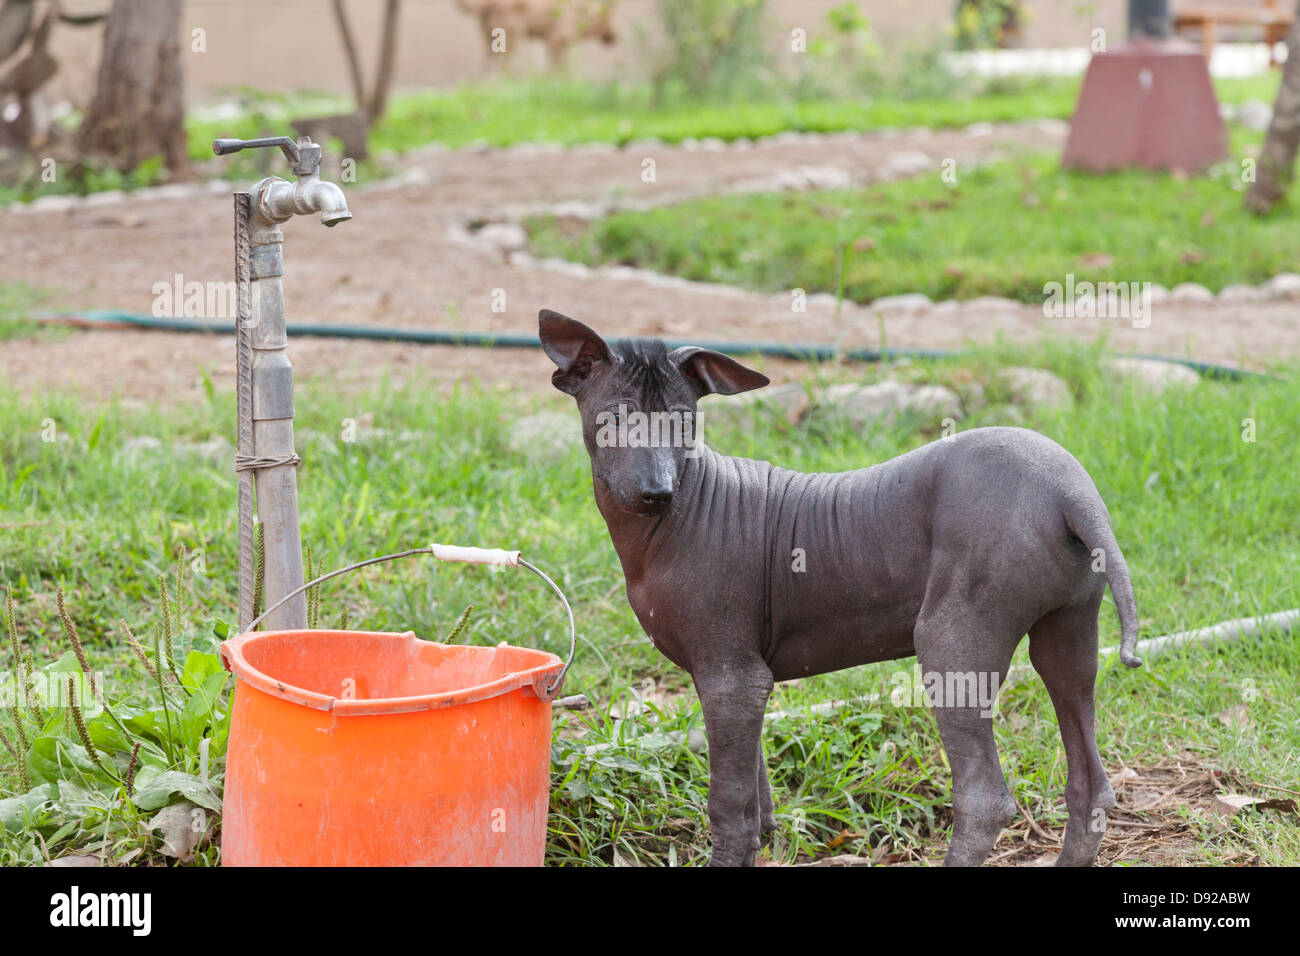 Peruvian Hairless Dog, Trujillo, Peru - Stock Image